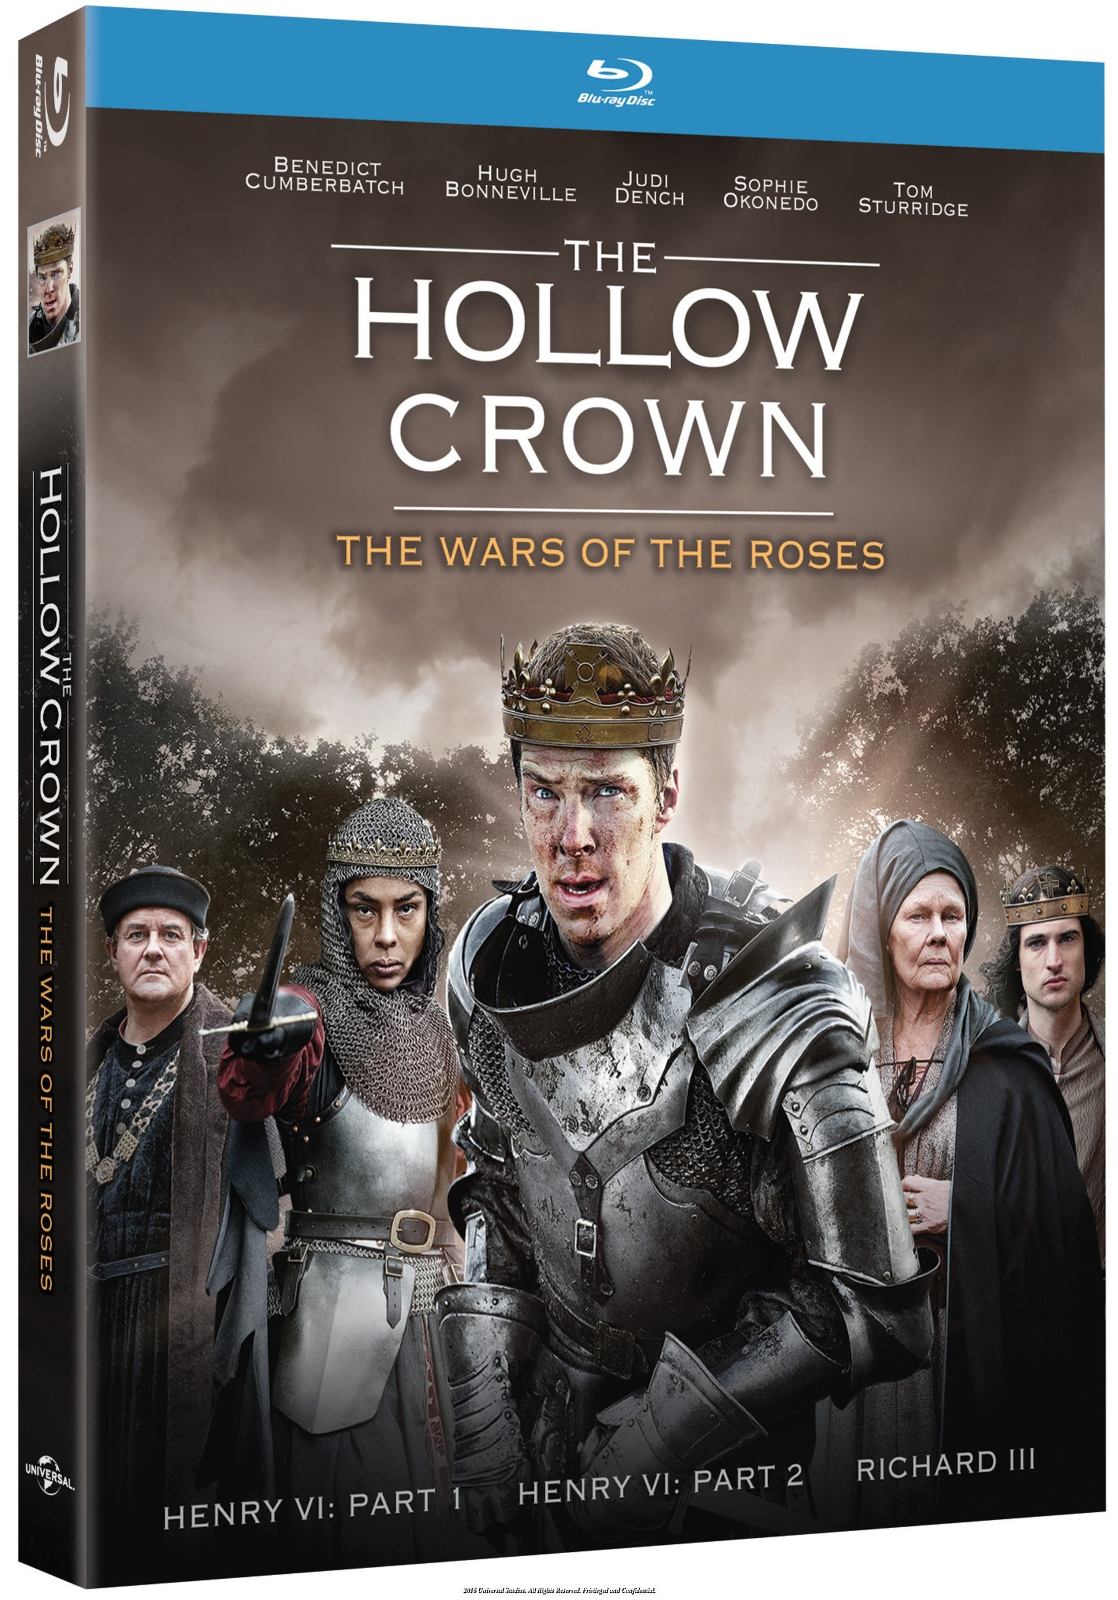 The Hollow Crown:The Wars of The Roses Blu-ray Review